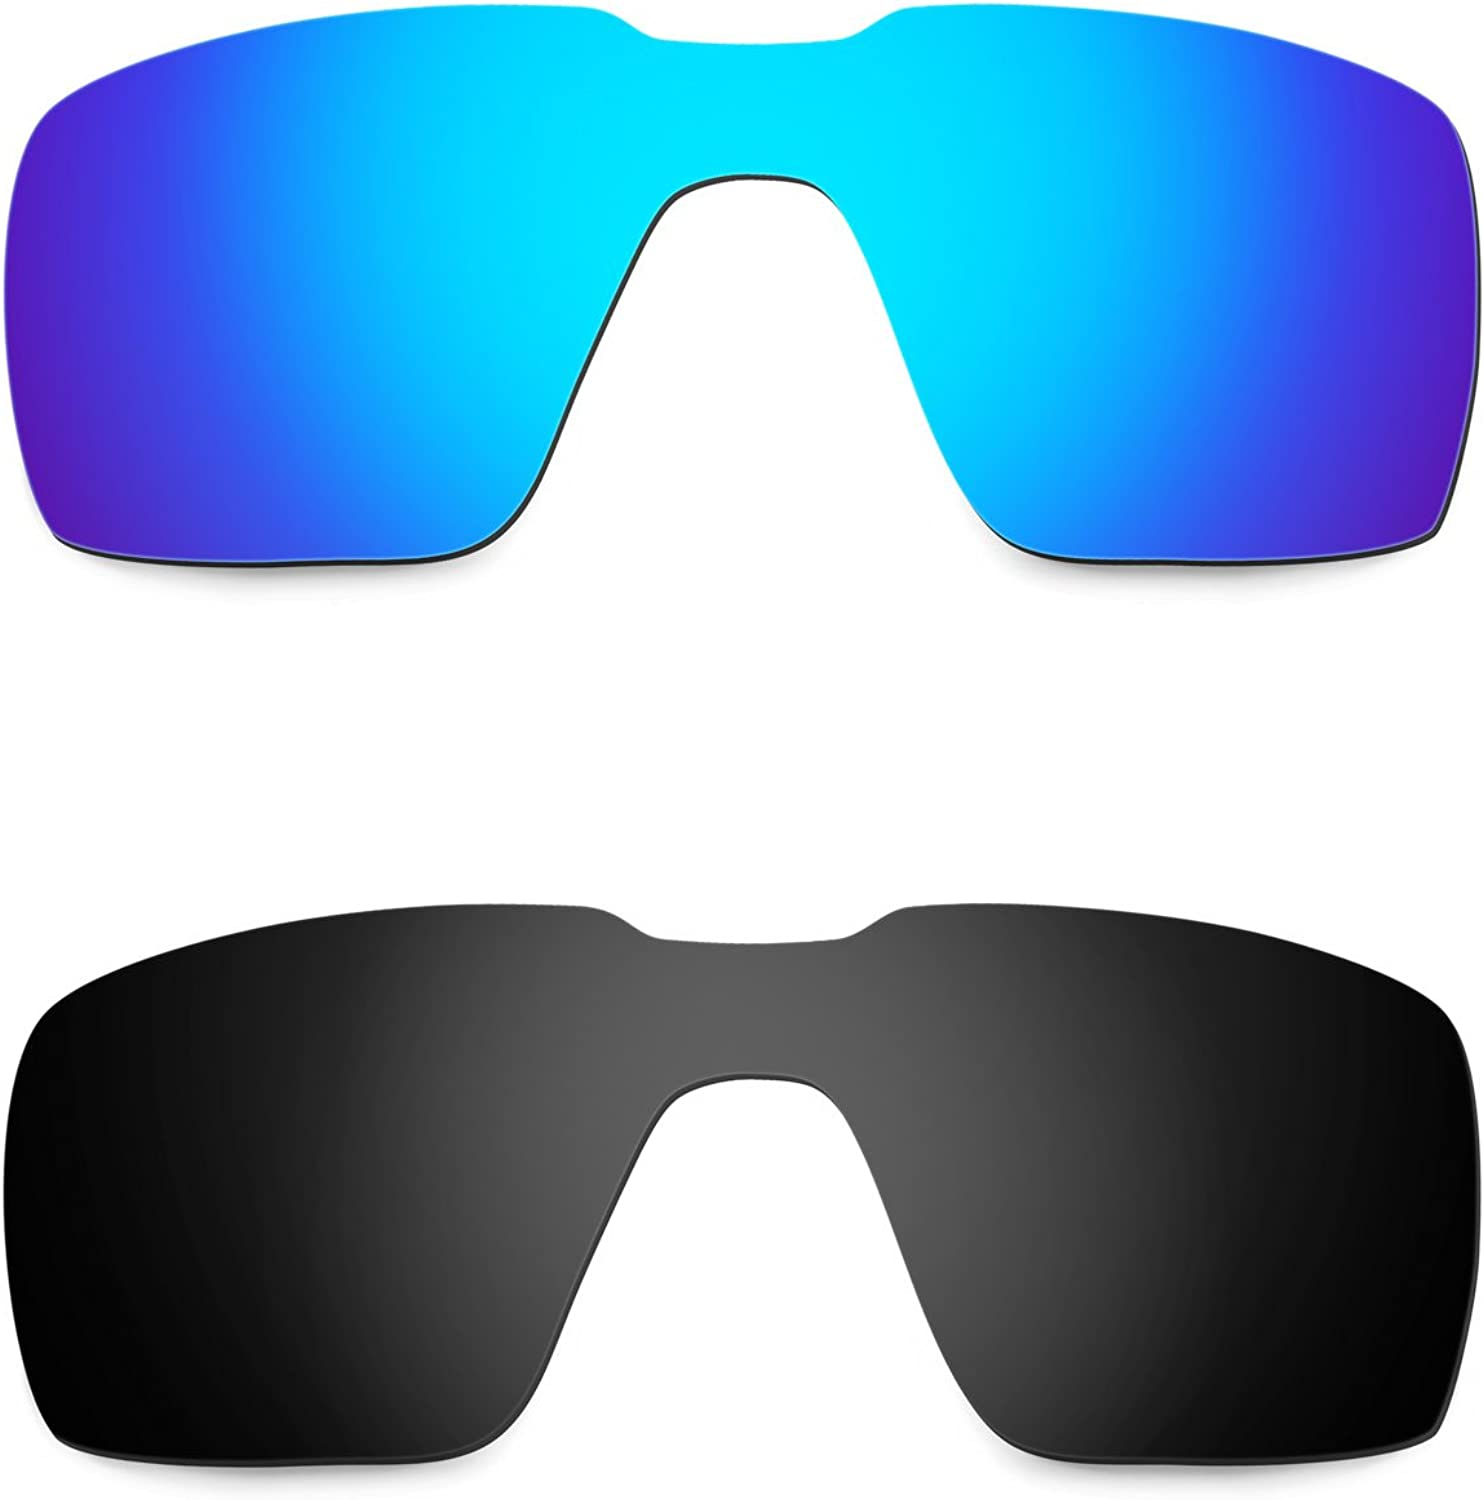 Hkuco Mens Replacement Lenses For Probation Sunglasses Blue/Black Polarized  at Amazon Men's Clothing store